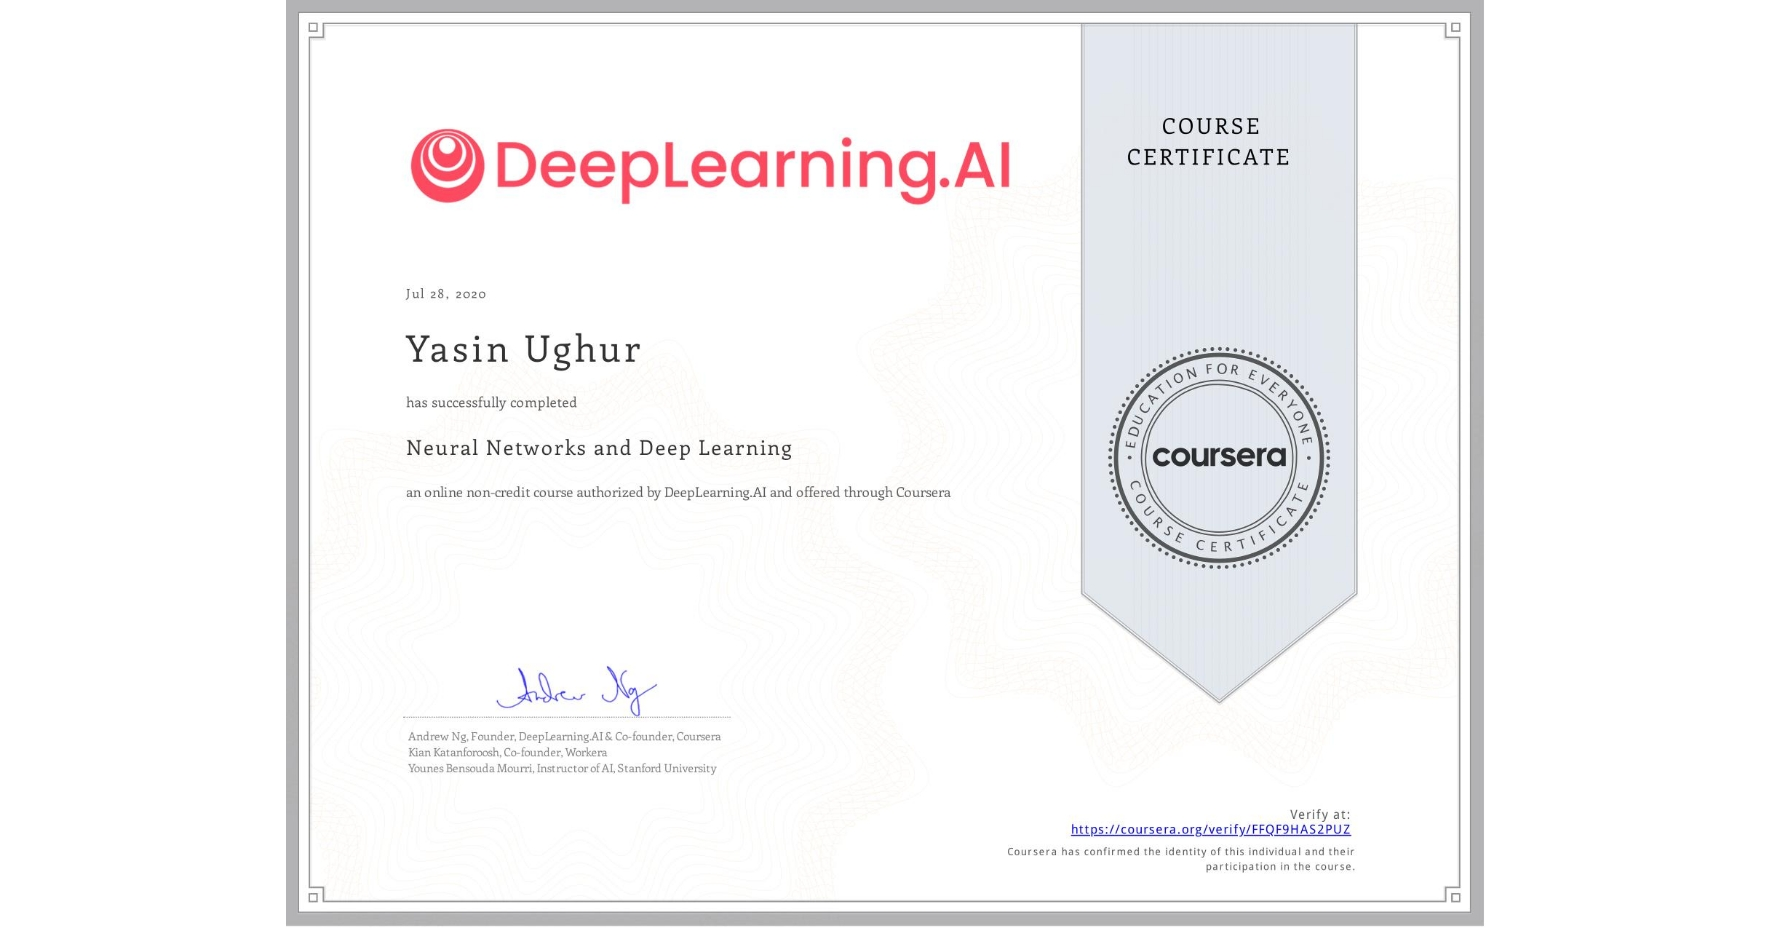 View certificate for Yasin Ughur, Neural Networks and Deep Learning, an online non-credit course authorized by DeepLearning.AI and offered through Coursera